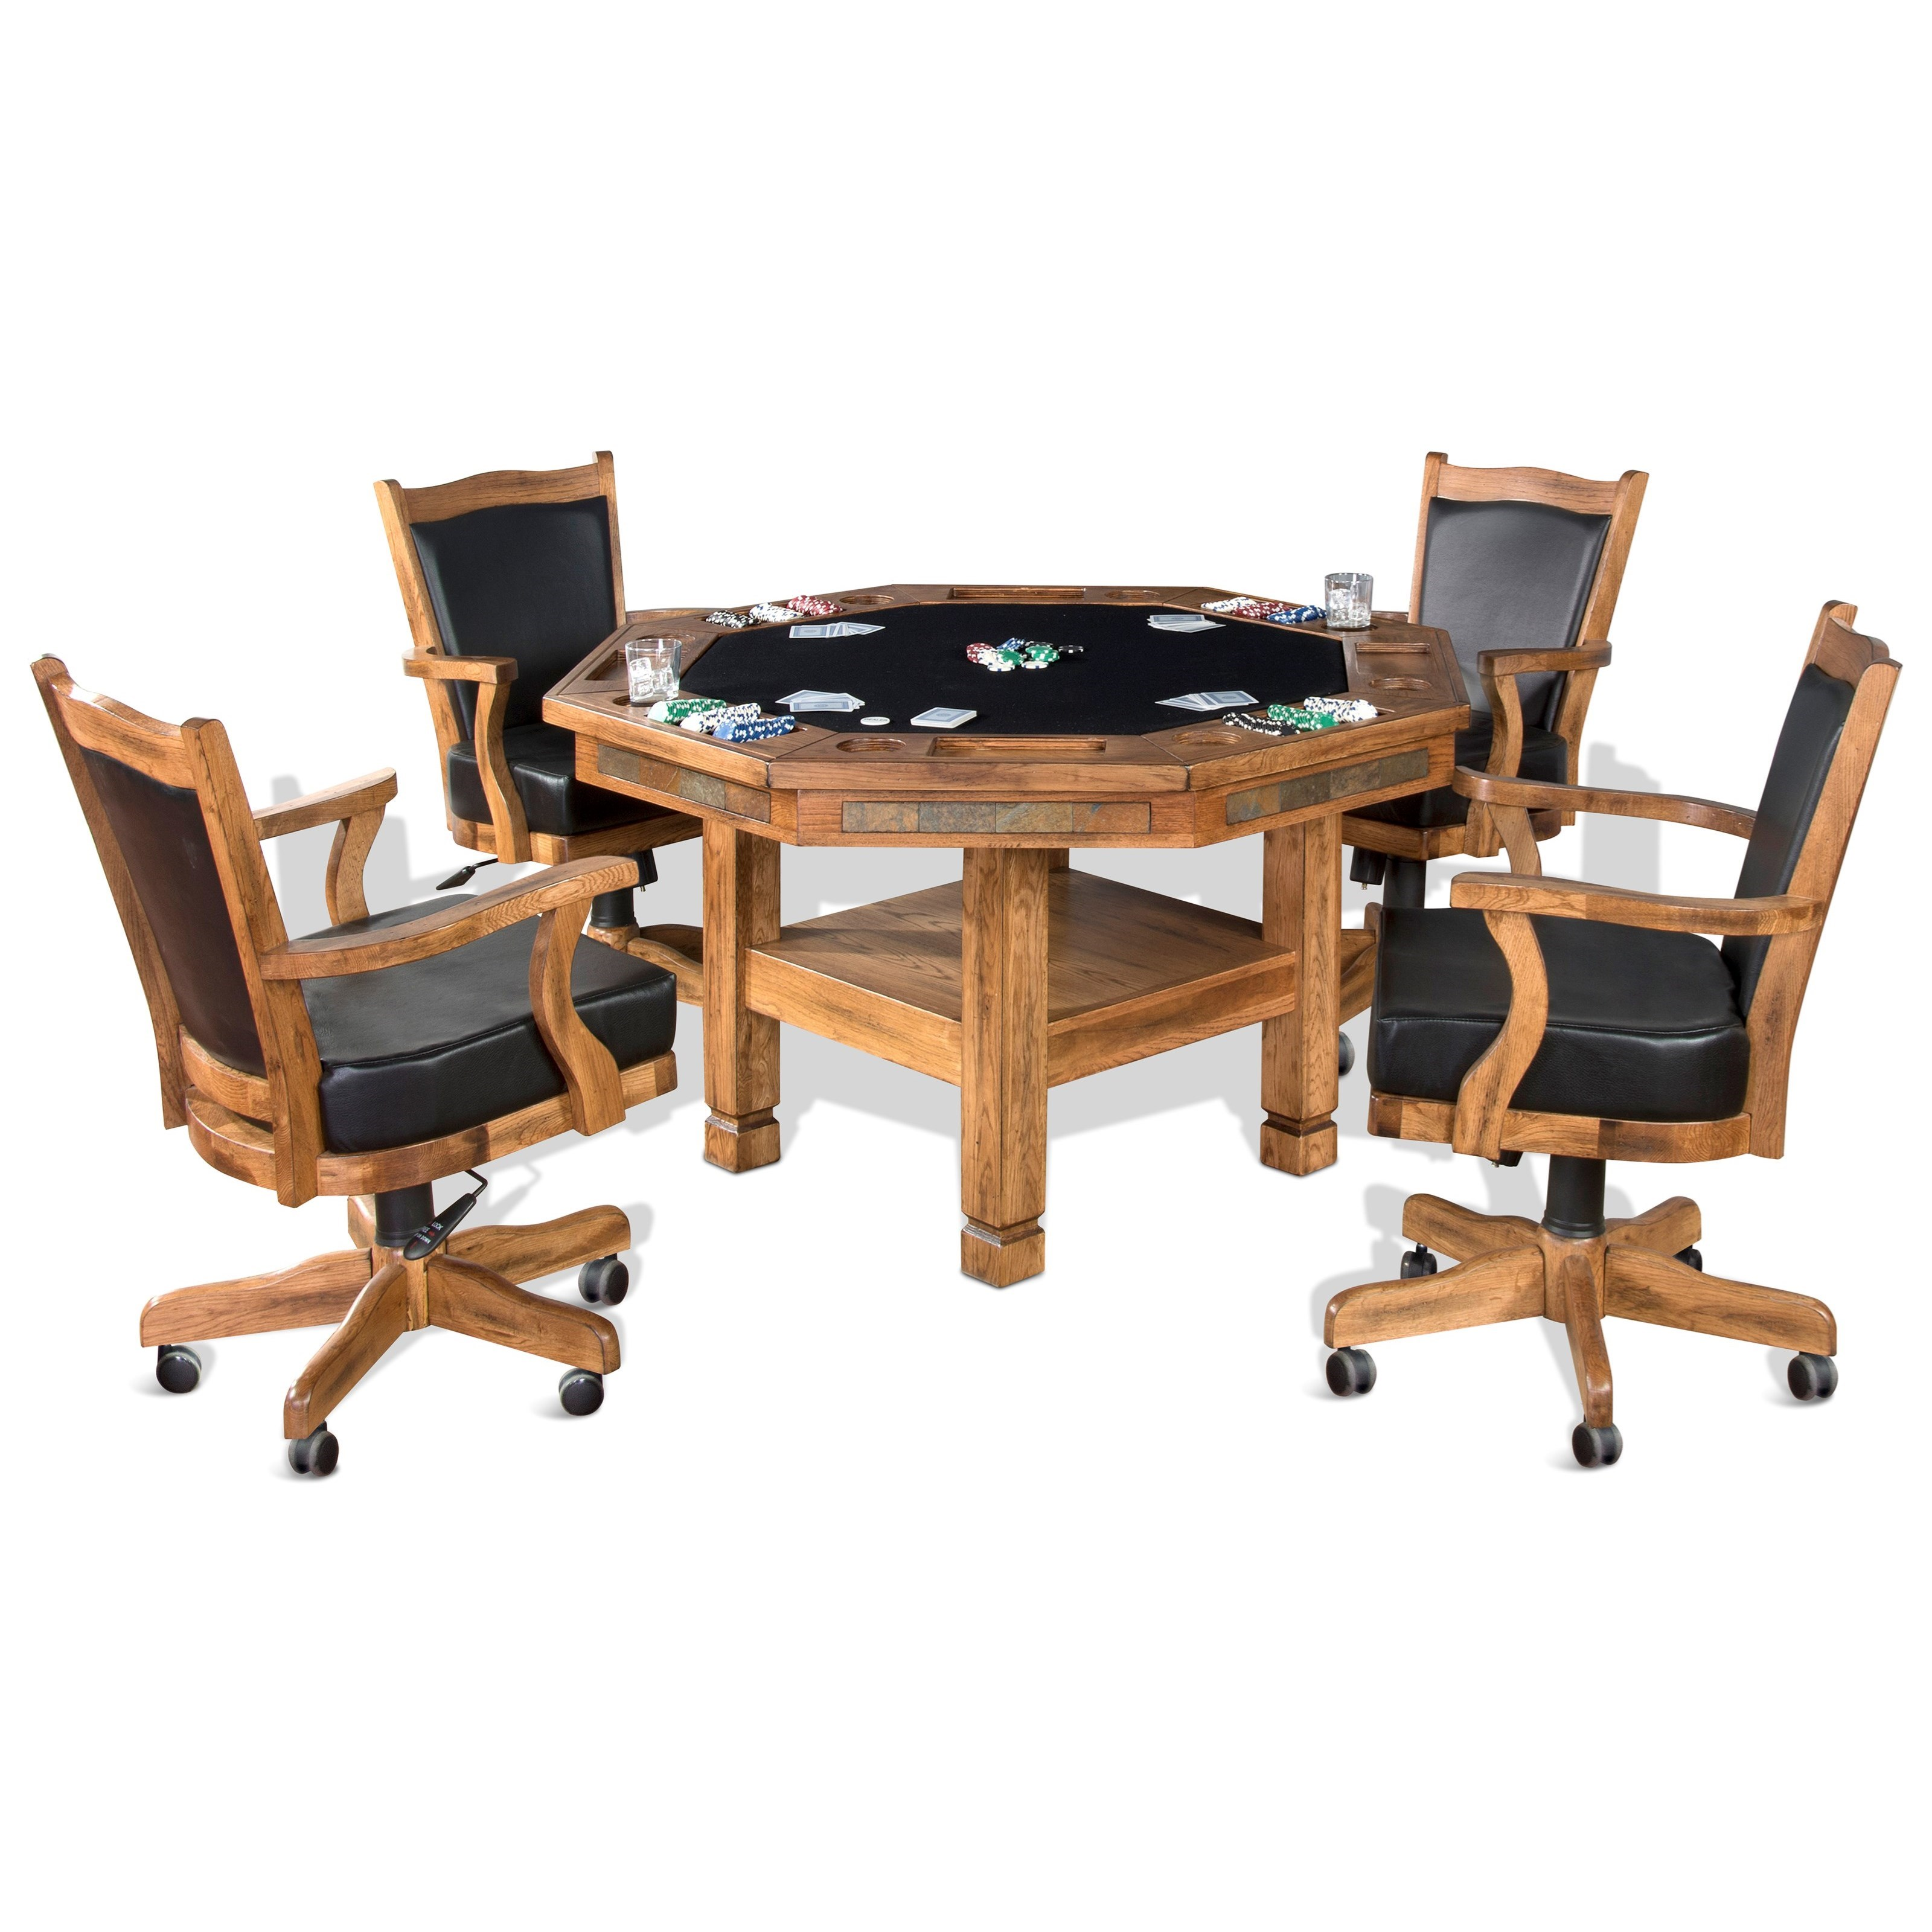 Sedona 5-Piece Game & Dining Table Set by Sunny Designs at Sparks HomeStore